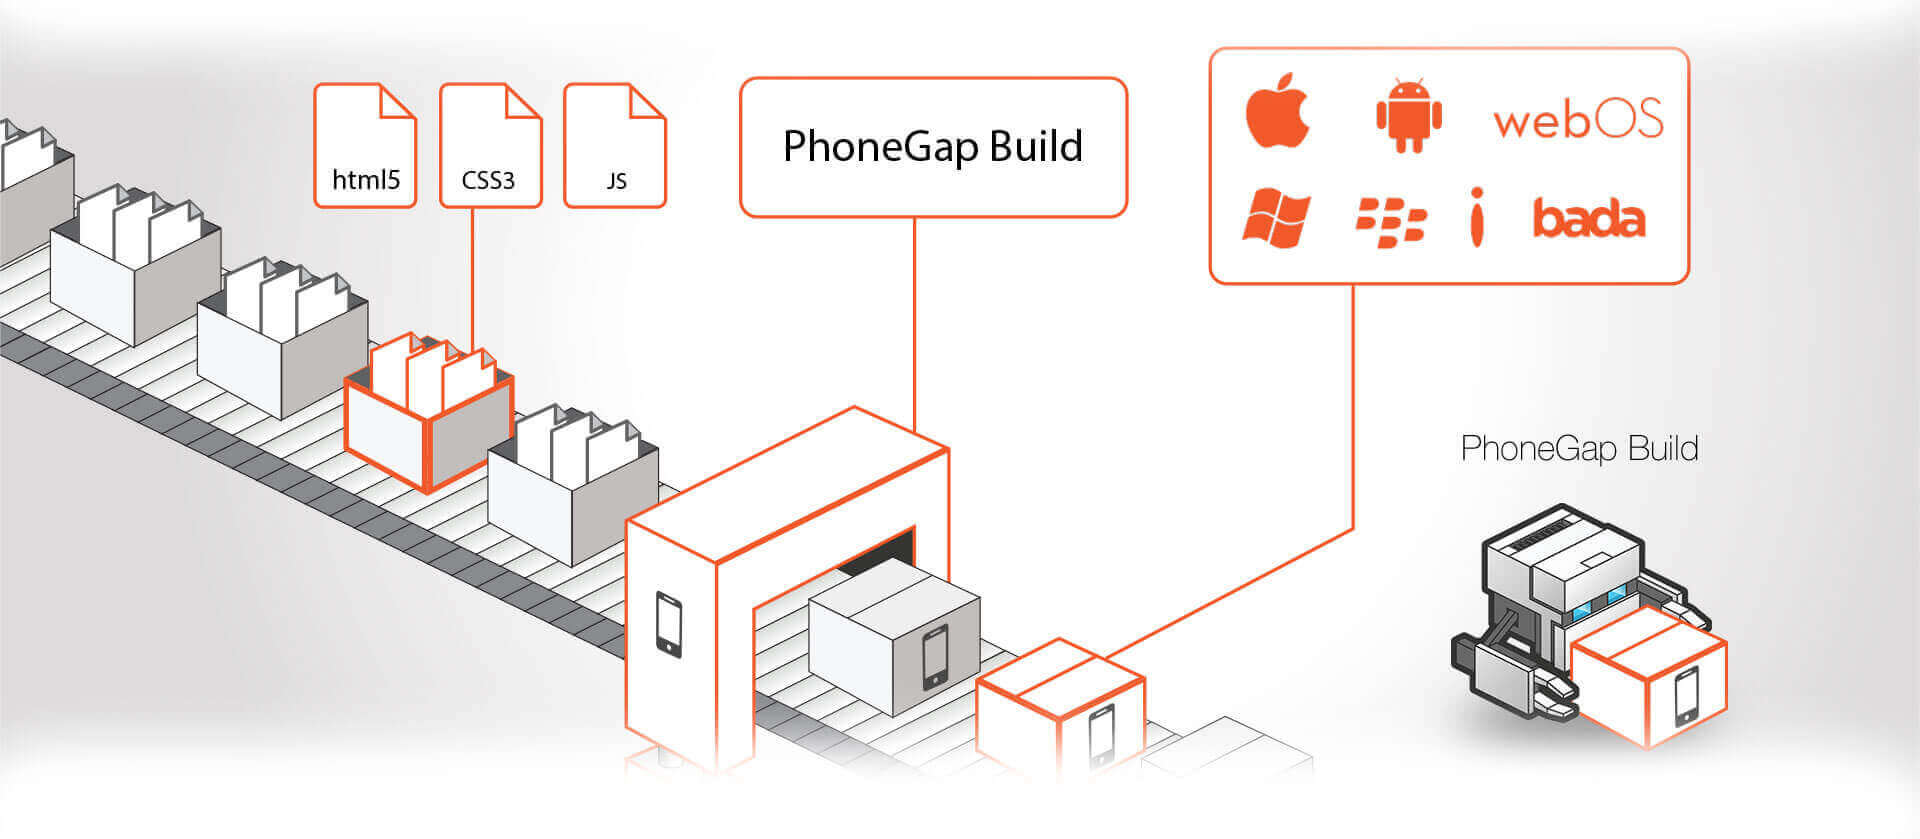 PHONEGAP APP DEVELOPMENT SERVICE